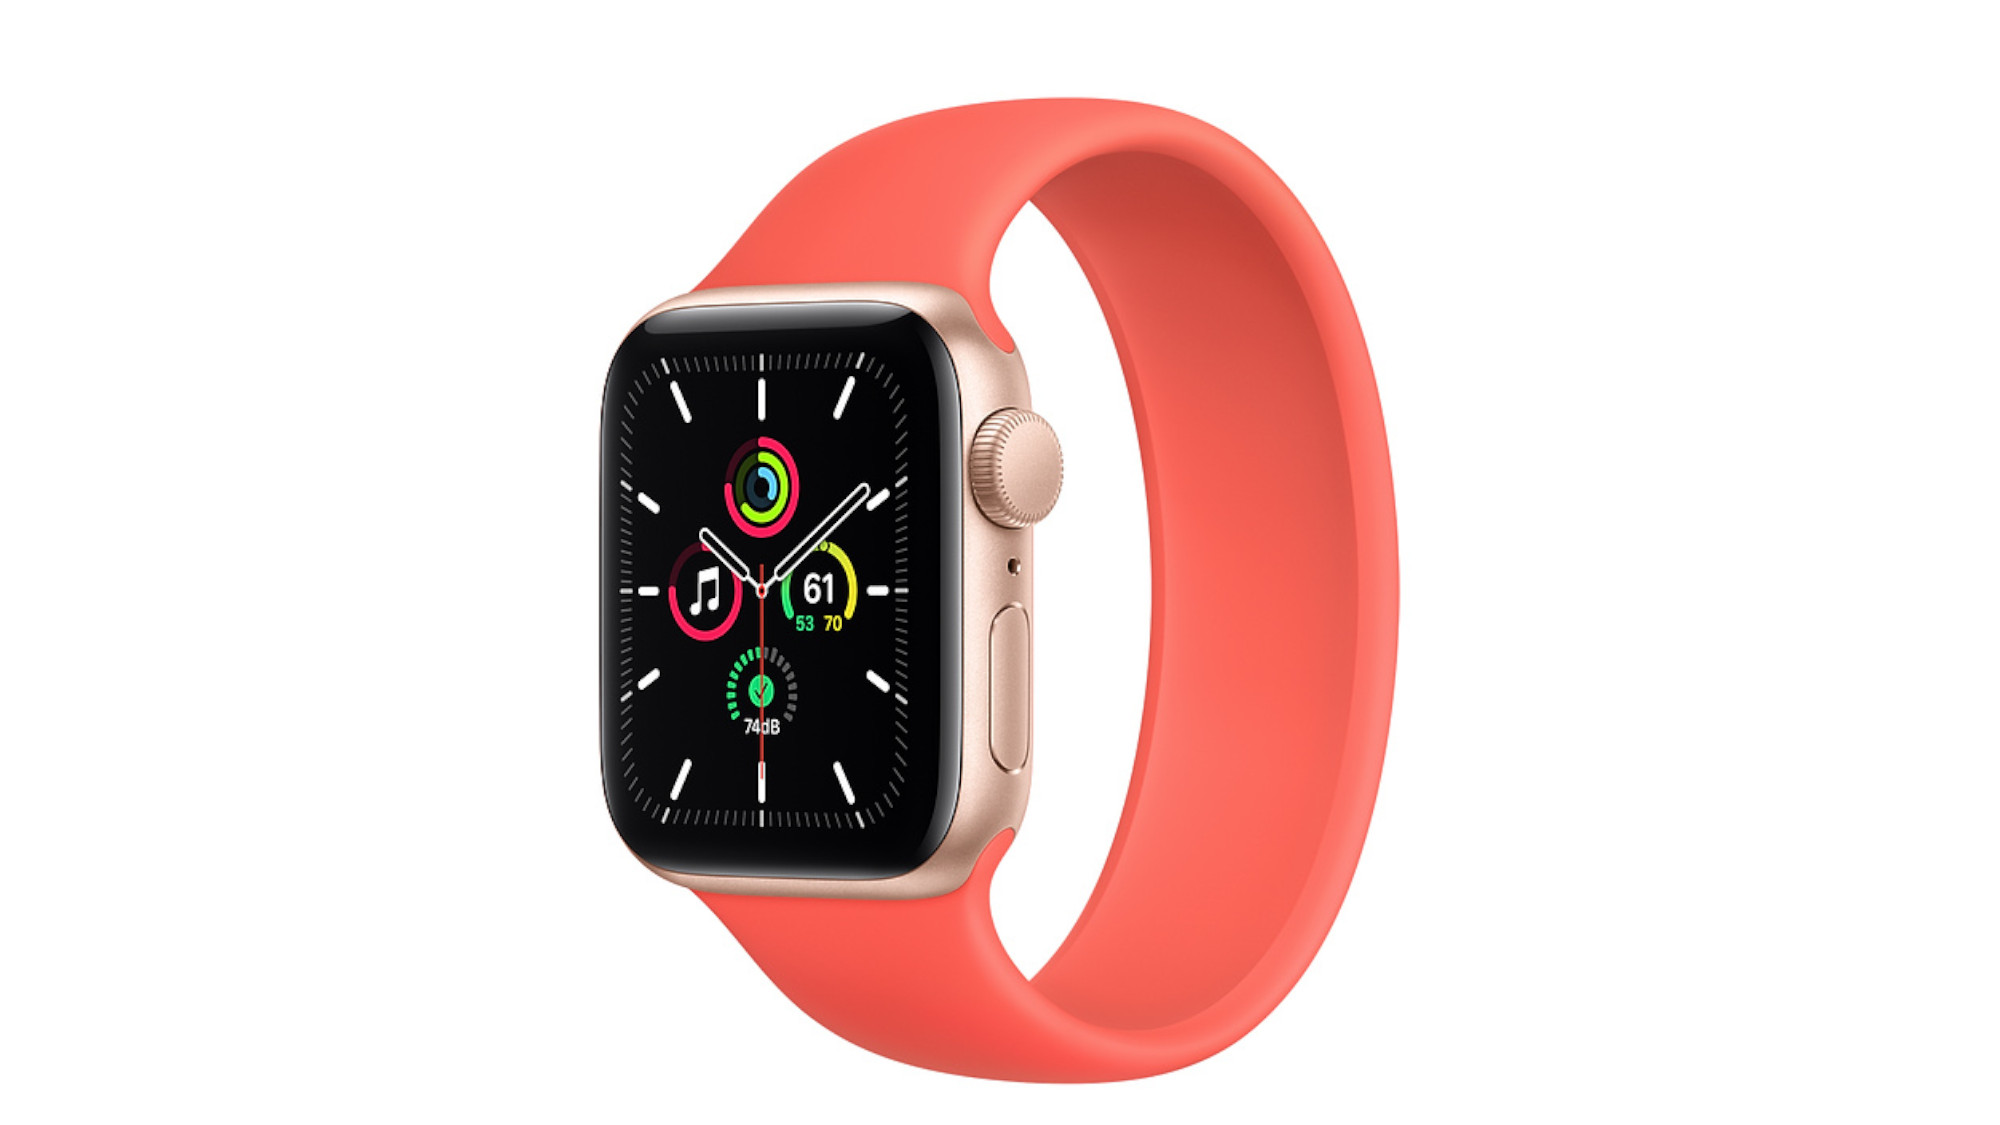 apple watch deals: SE